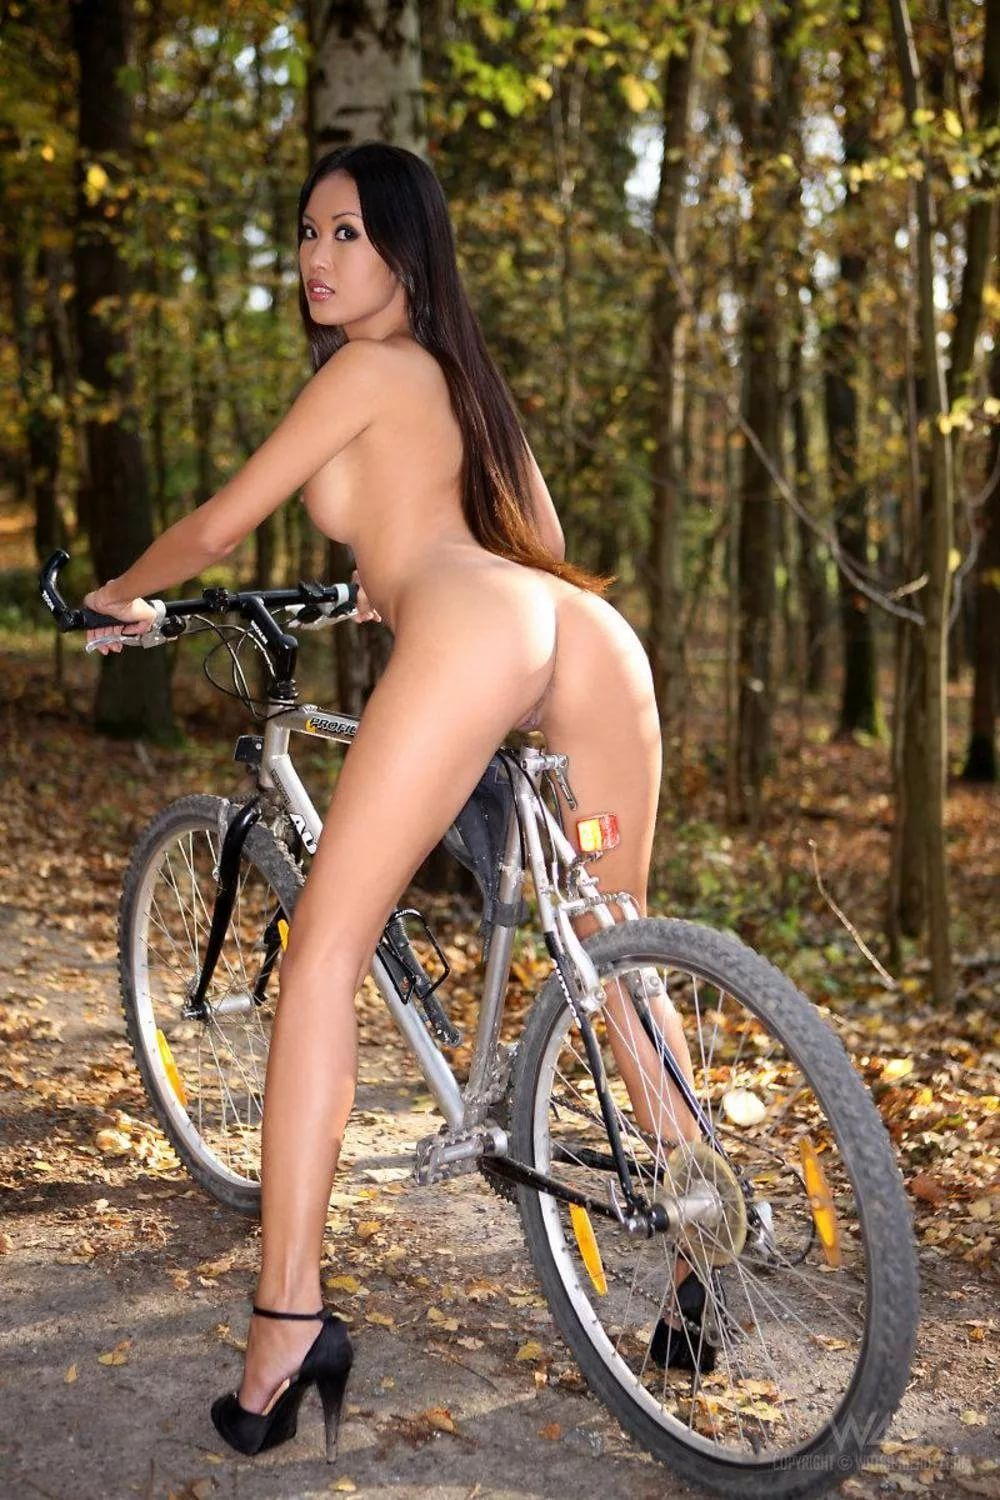 Naked Girl On A Bike